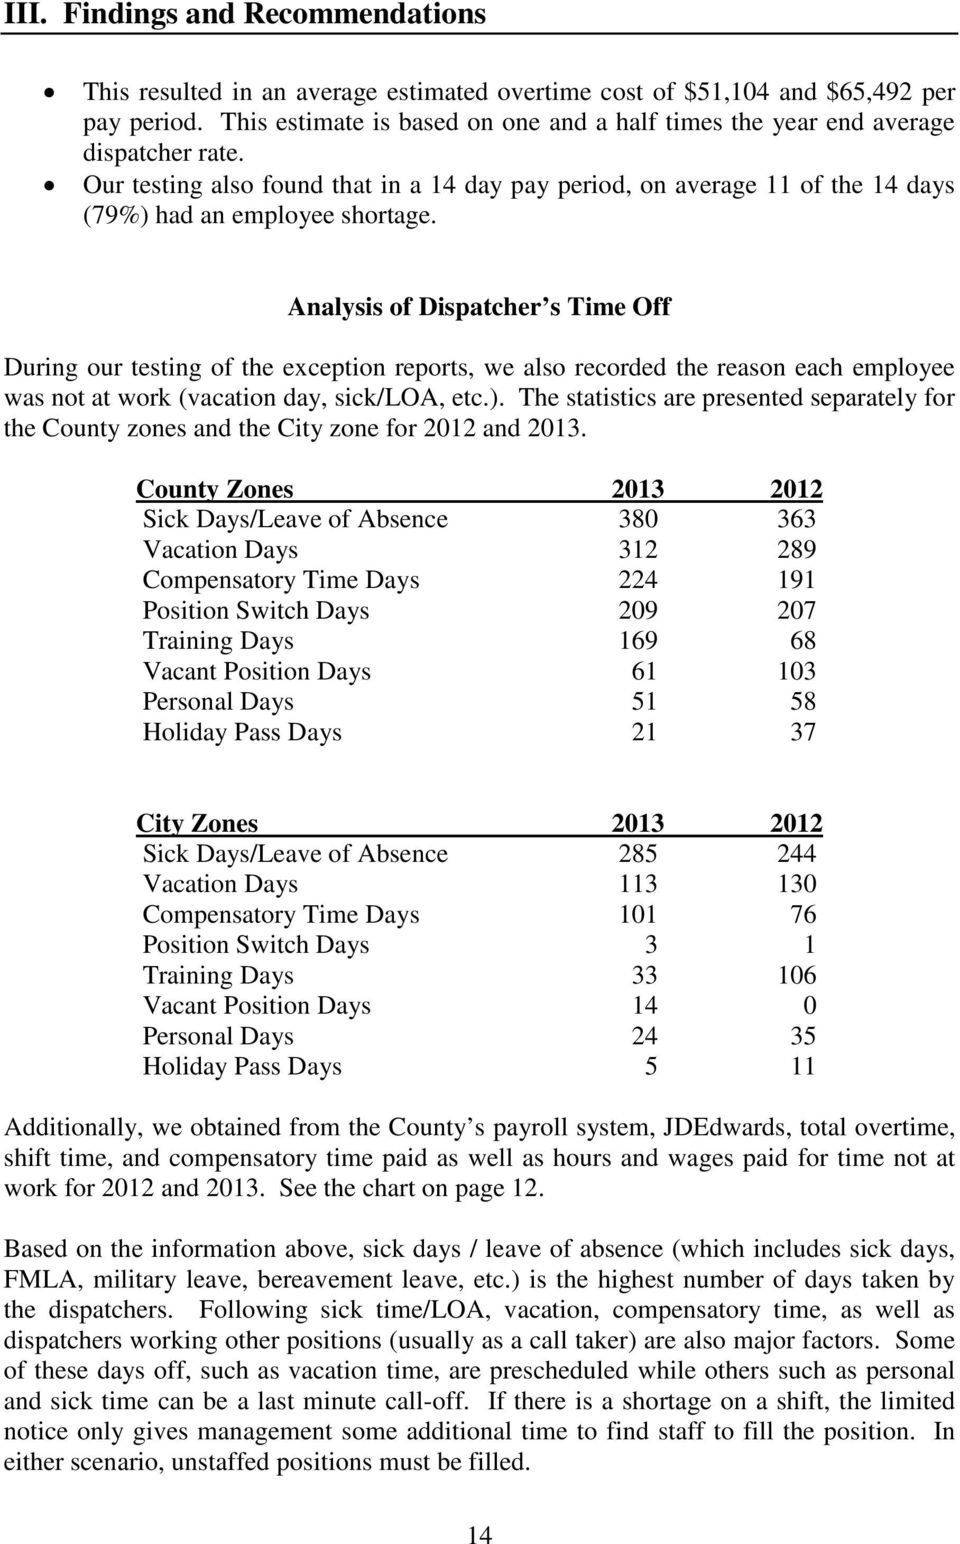 Analysis of Dispatcher s Time Off During our testing of the exception reports, we also recorded the reason each employee was not at work (vacation day, sick/loa, etc.).